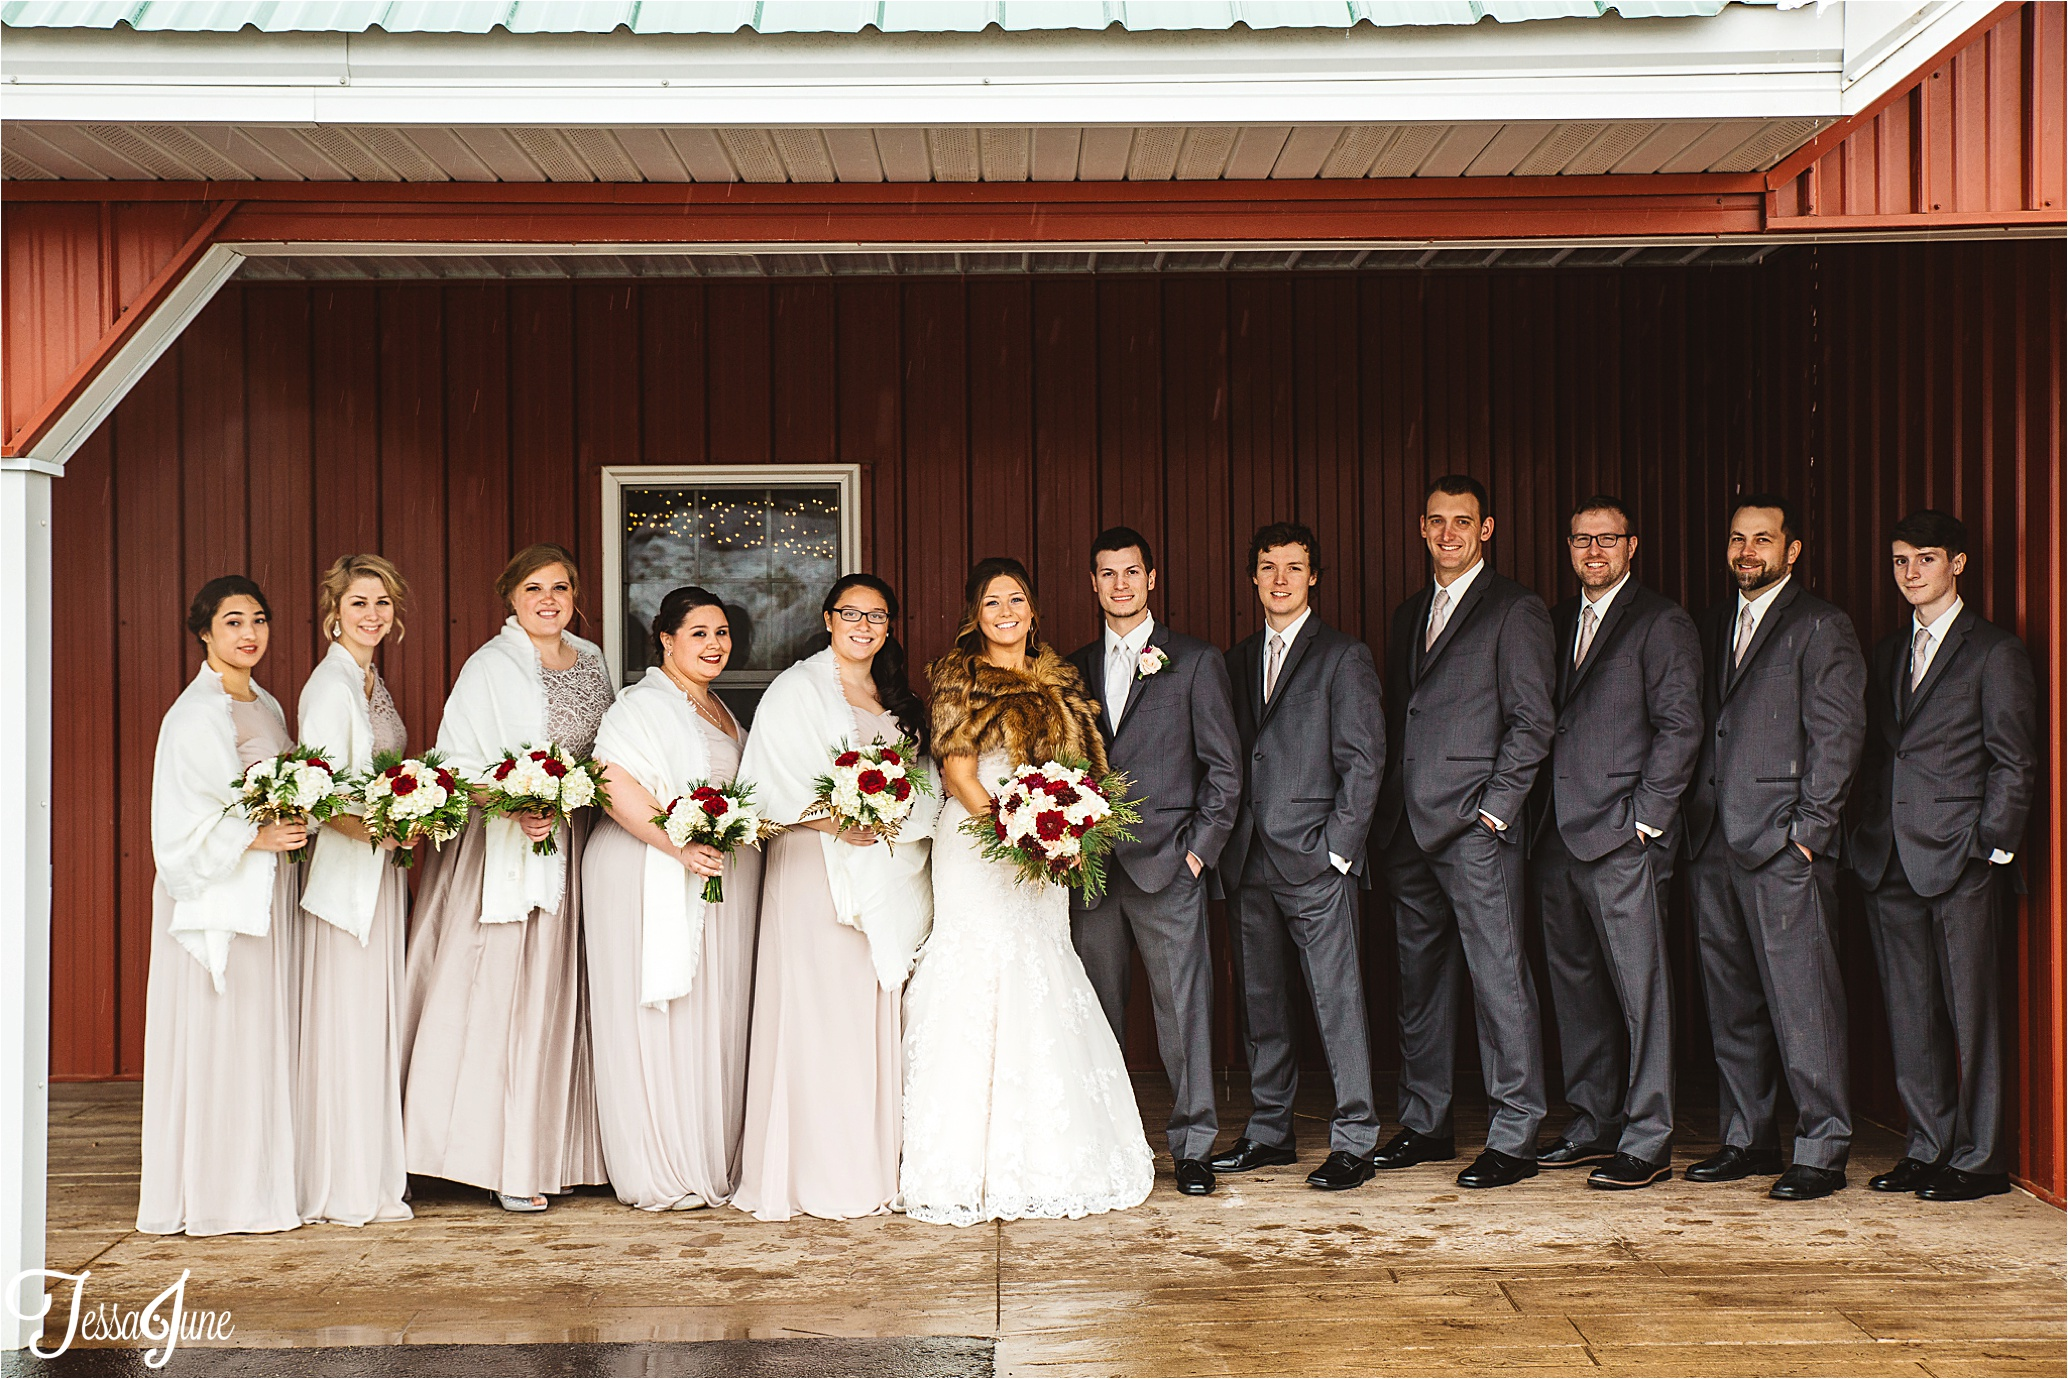 st-cloud-minnesota-wedding-photographer-the-outpost-center-chaska-snow-winter-romantic-bridal-party-barn